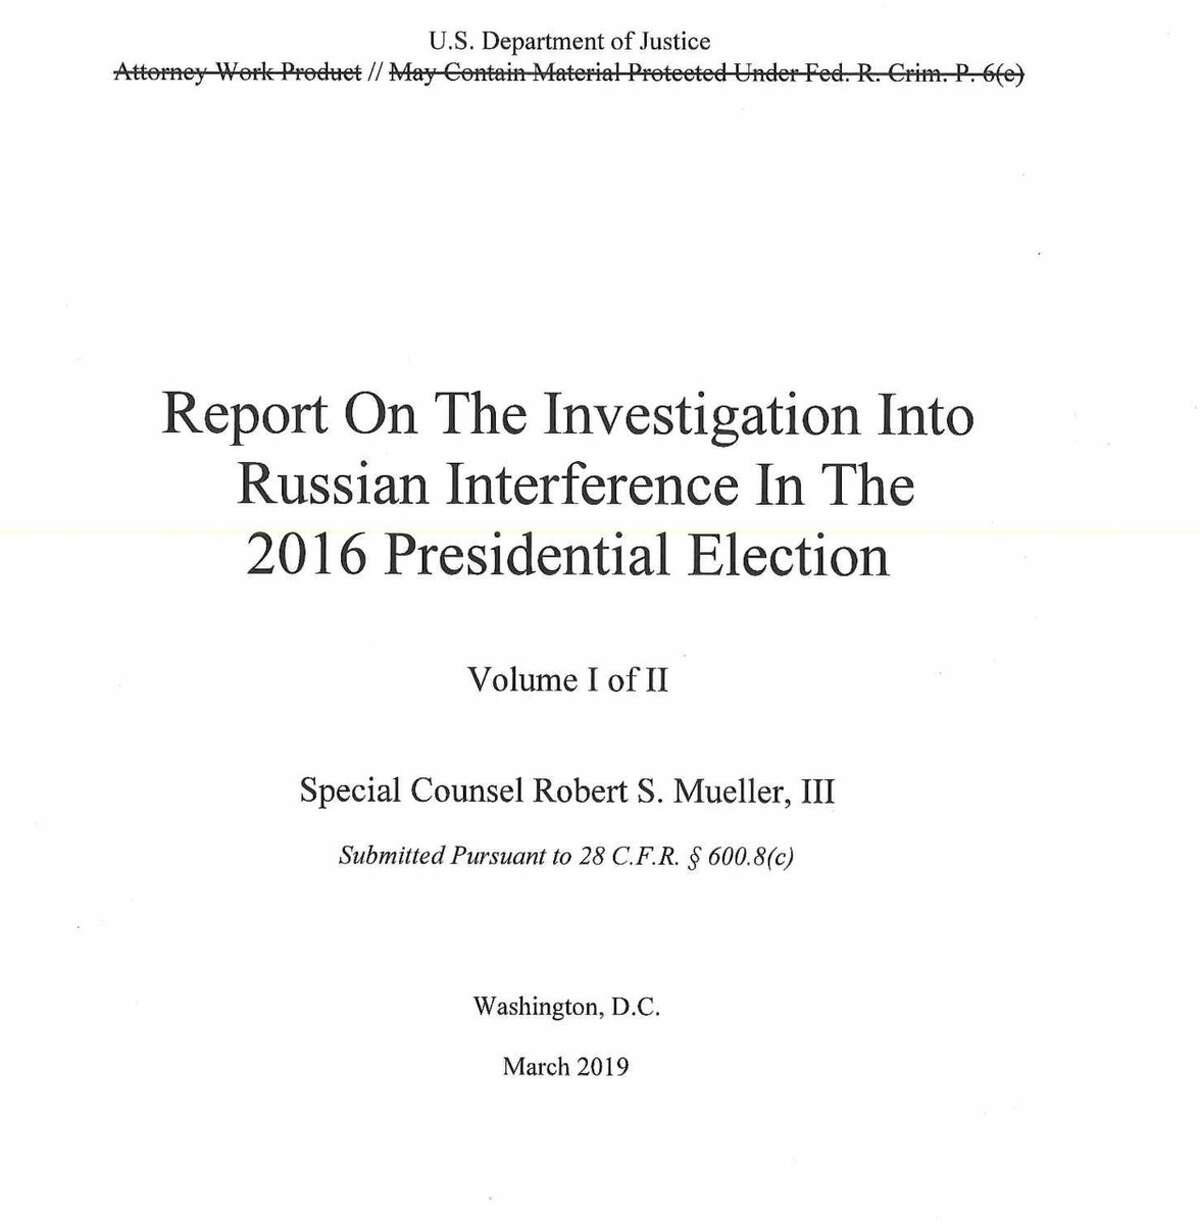 The redacted Mueller report has been released.